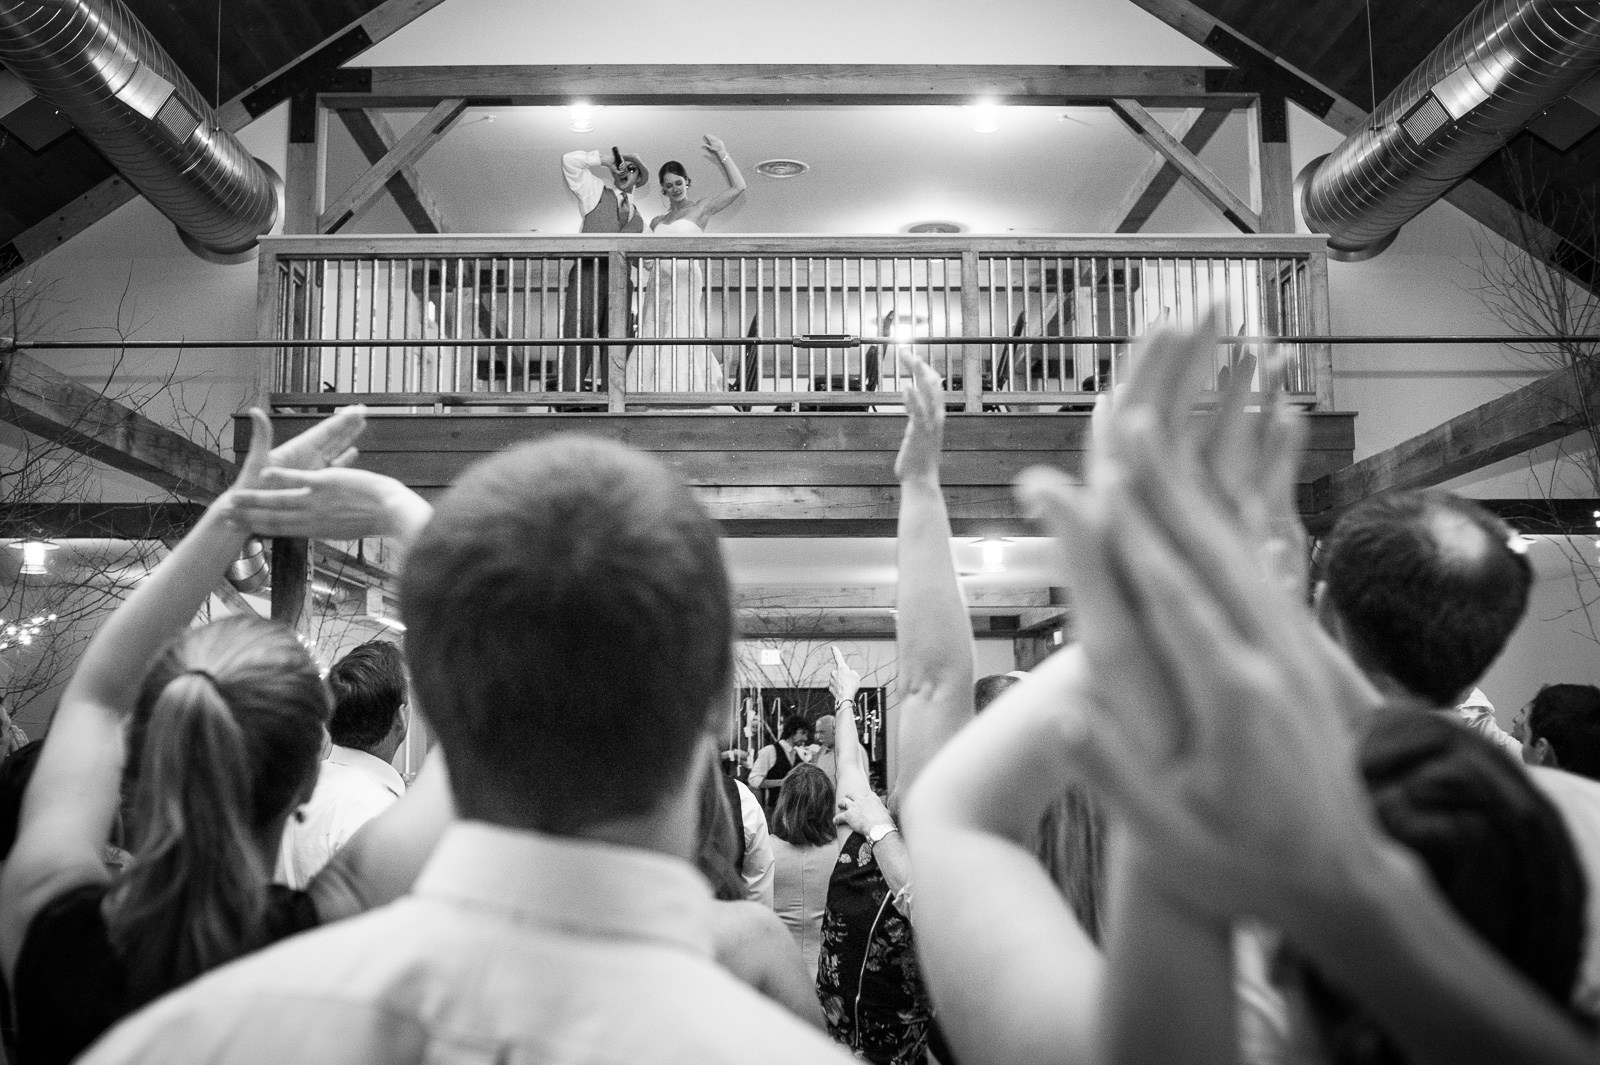 Caption: Whitney Elizabeth Franklin & Mark Raymond Stuckey Wedding Event at The Union Church of Proctor, Vermont. Reception Event at The Mountain Top Inn and Resort in Chittenden, Vermont. 20130629, United States.© Copyright 2013 Seth Butler / Eve Event Photography. All Rights Reserved.